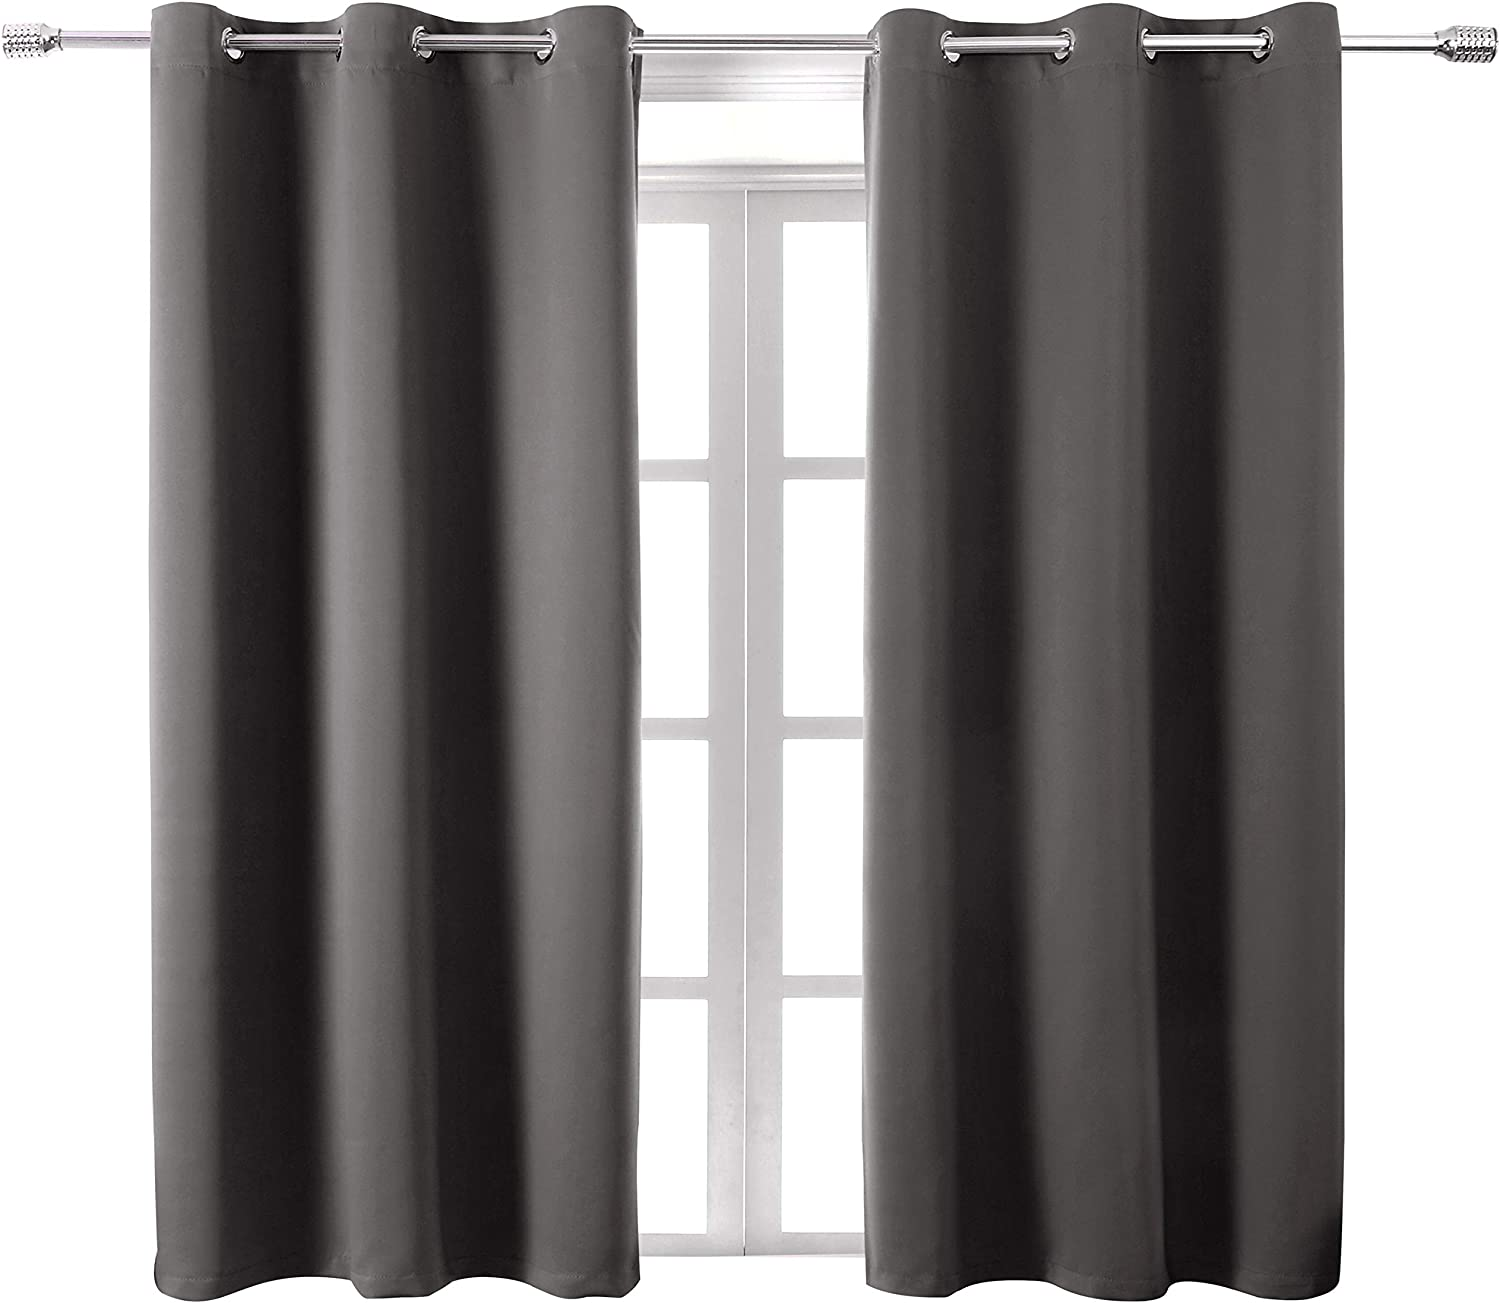 WONTEX Blackout Curtains Room Darkening Thermal Insulated with Grommet Window Curtain for Living Room, 42 x 54 inch, Grey, 2 Panels